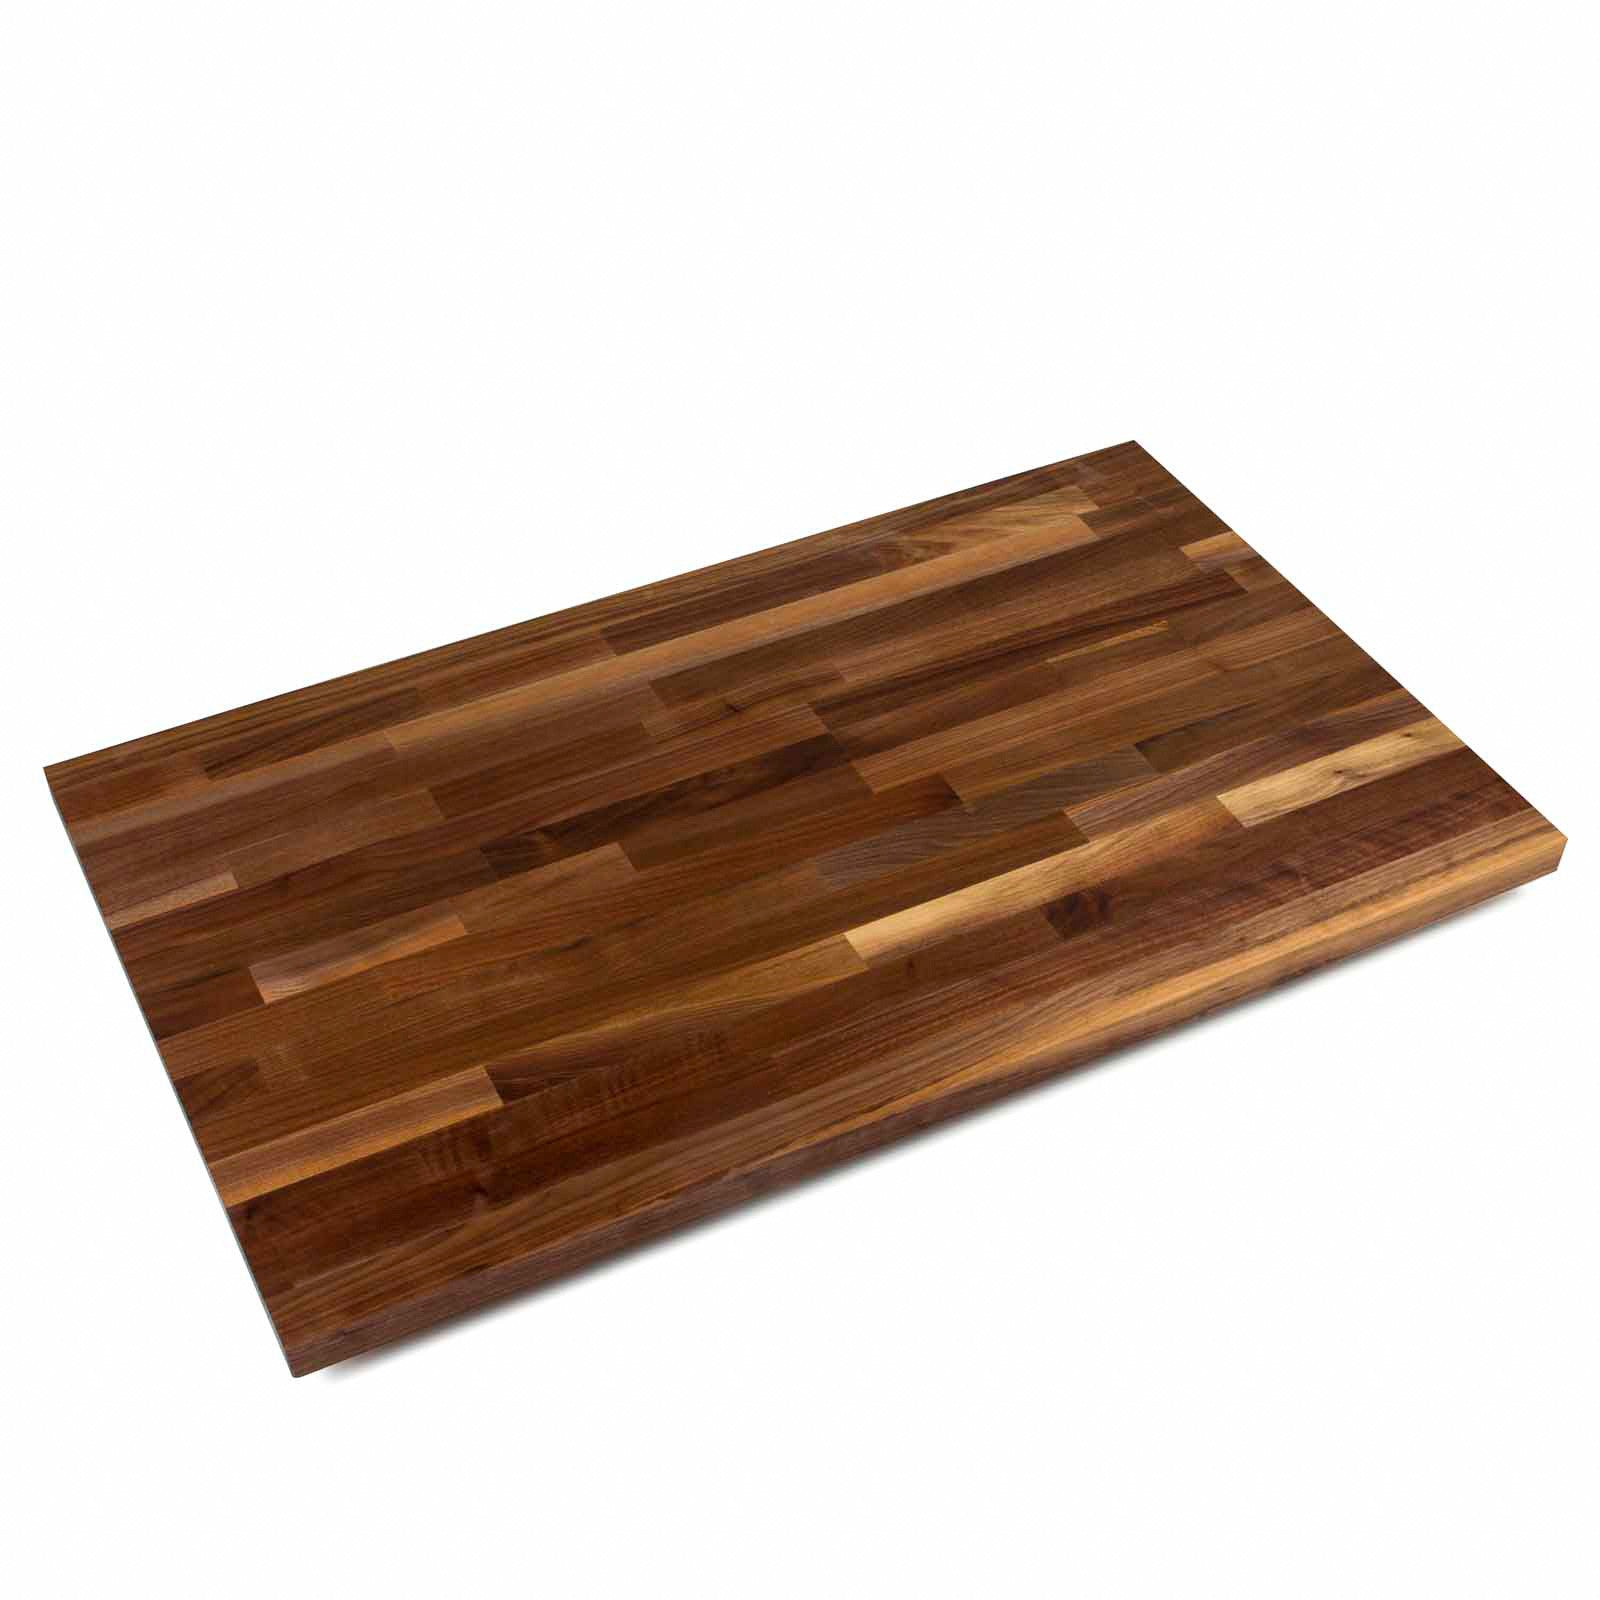 "John Boos 1 1/2"" Thick Blended Walnut Butcher Block Countertop - 36"" Wide"